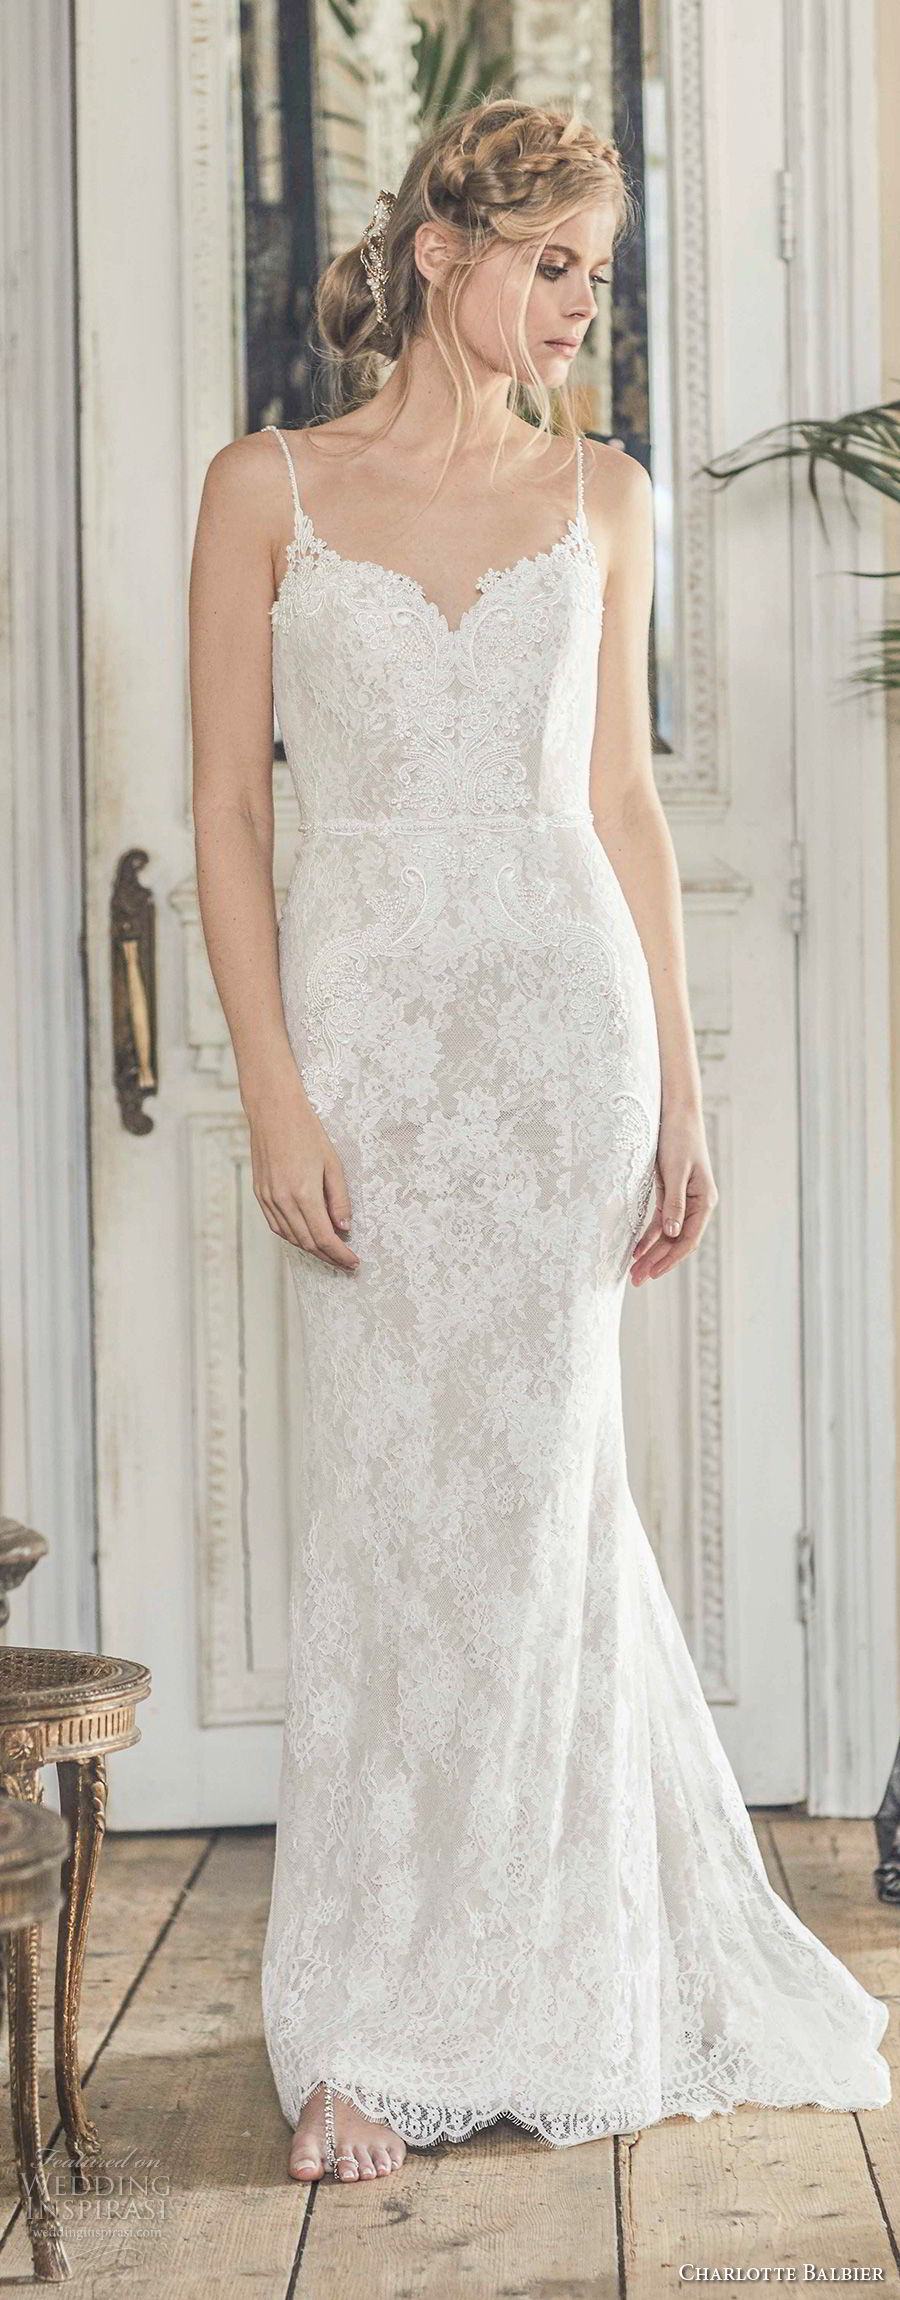 charlotte balbier 2018 bridal spaghetti strap sweetheart neckline full embellishment elegant romantic sheath wedding dress open back sweep train (nyree) mv